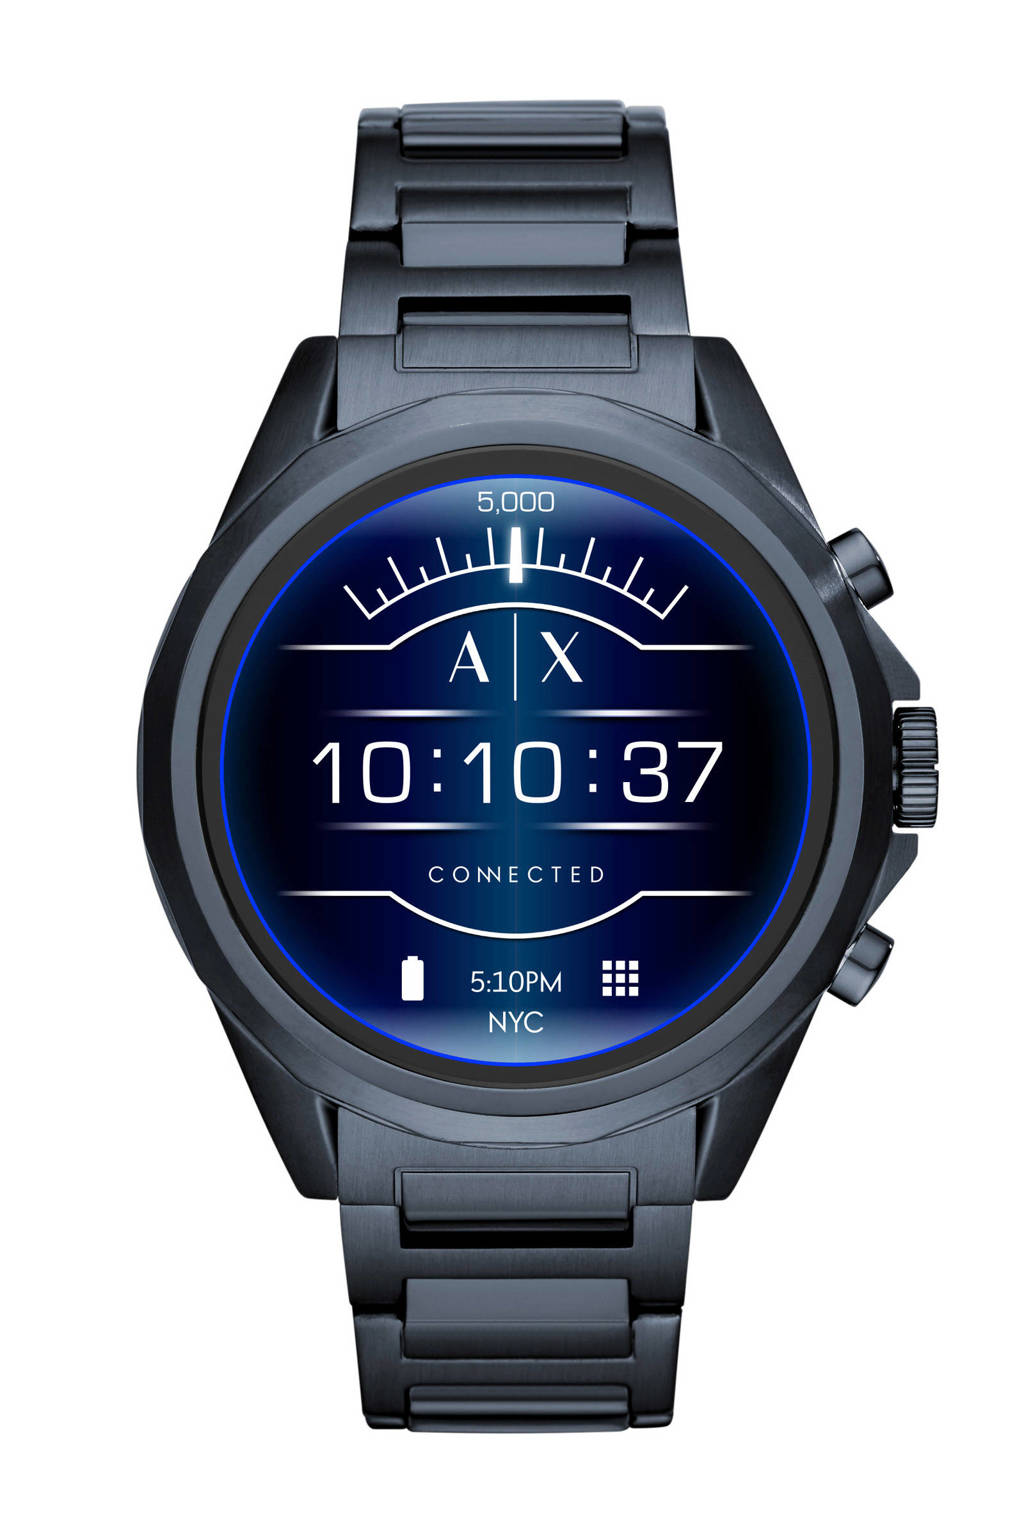 Armani Exchange Connected Drexler display smartwatch Gen 4 AXT2003, Blauw